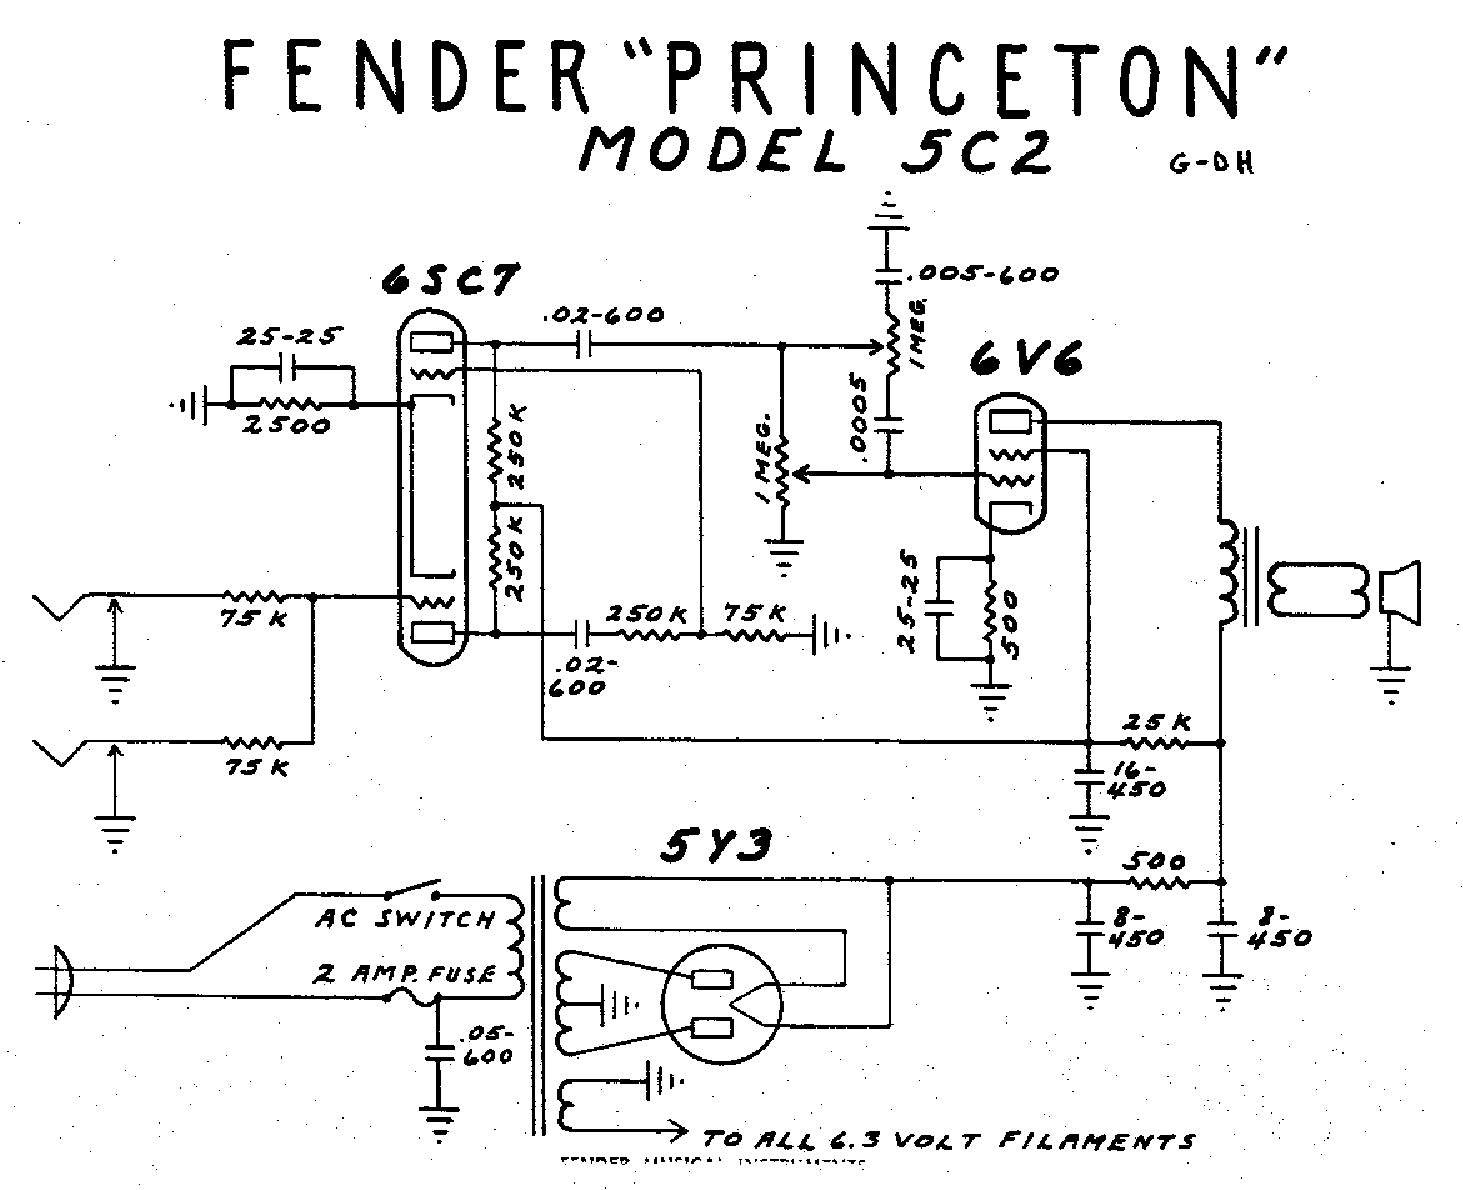 FENDER PRINCETON-5C2 Service Manual download, schematics ... on technical drawing, functional flow block diagram, block diagram, tube map, piping and instrumentation diagram, one-line diagram, circuit diagram,